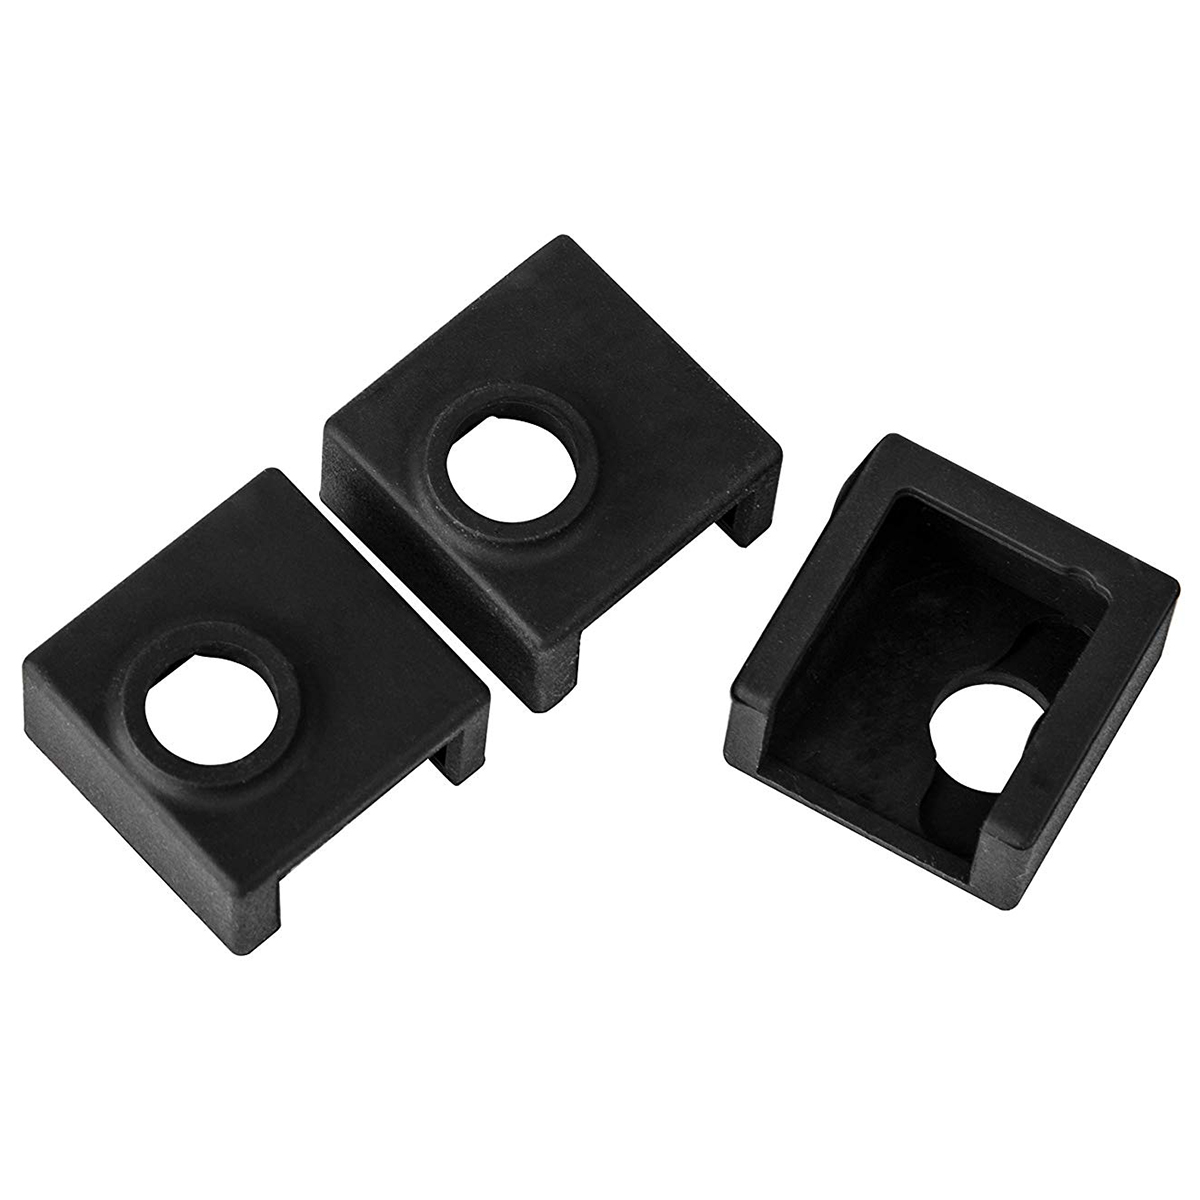 3D Printer Silicone Case Set Of Three For Ender 3 CR-10 CR-10S